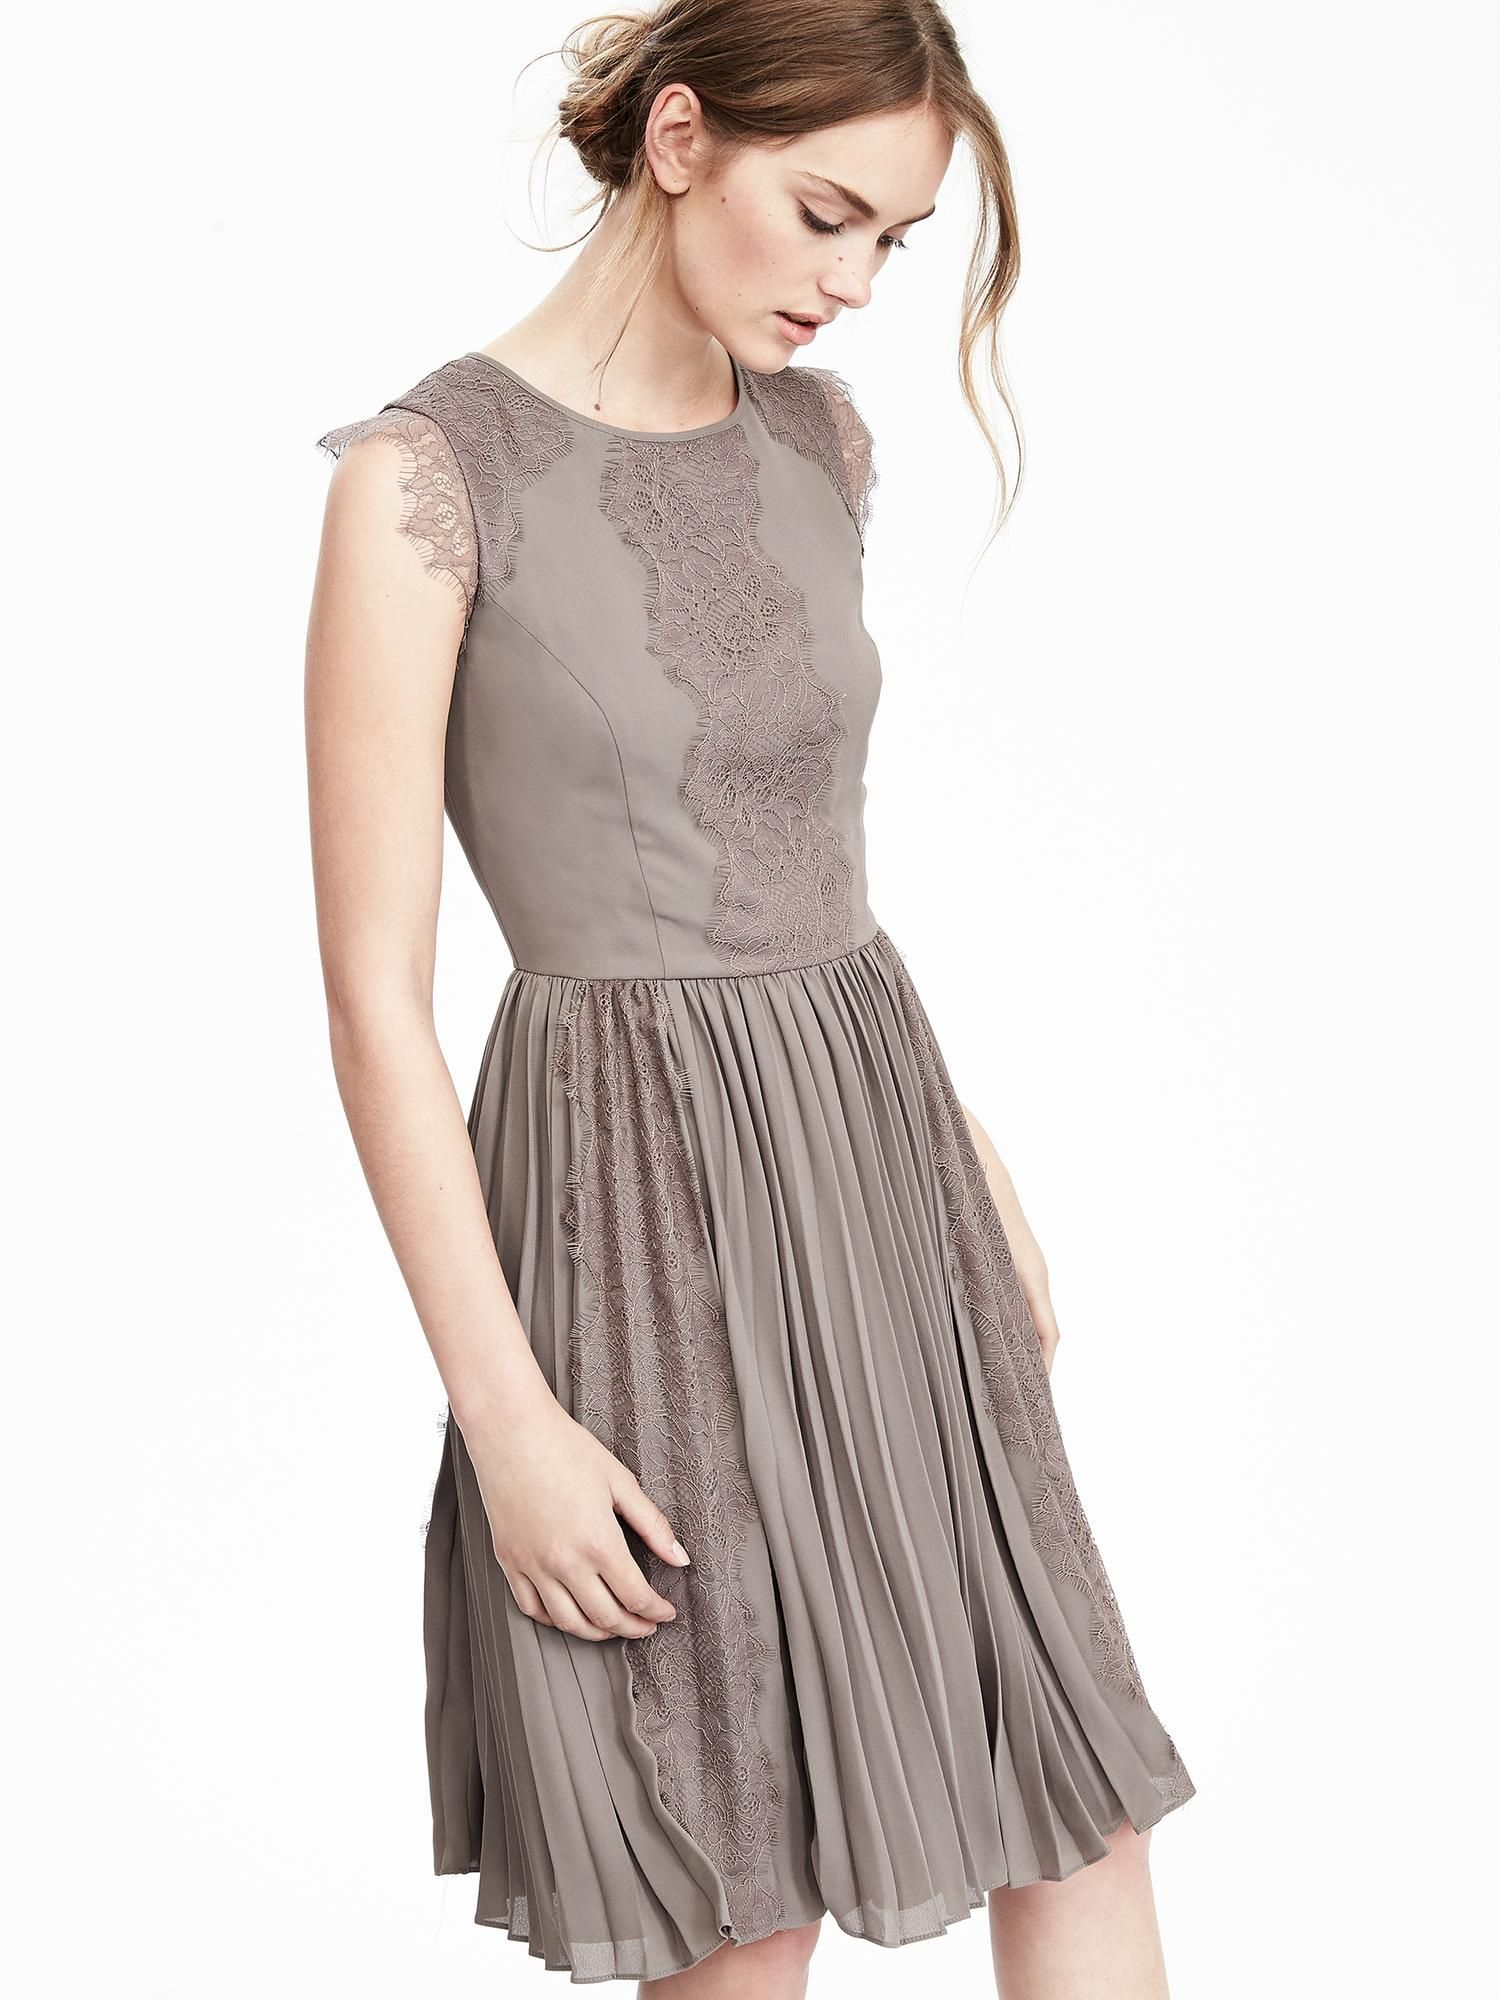 73ca5cbc Oyster pleated lace dress | Banana Republic Sept 16 | My Style ...